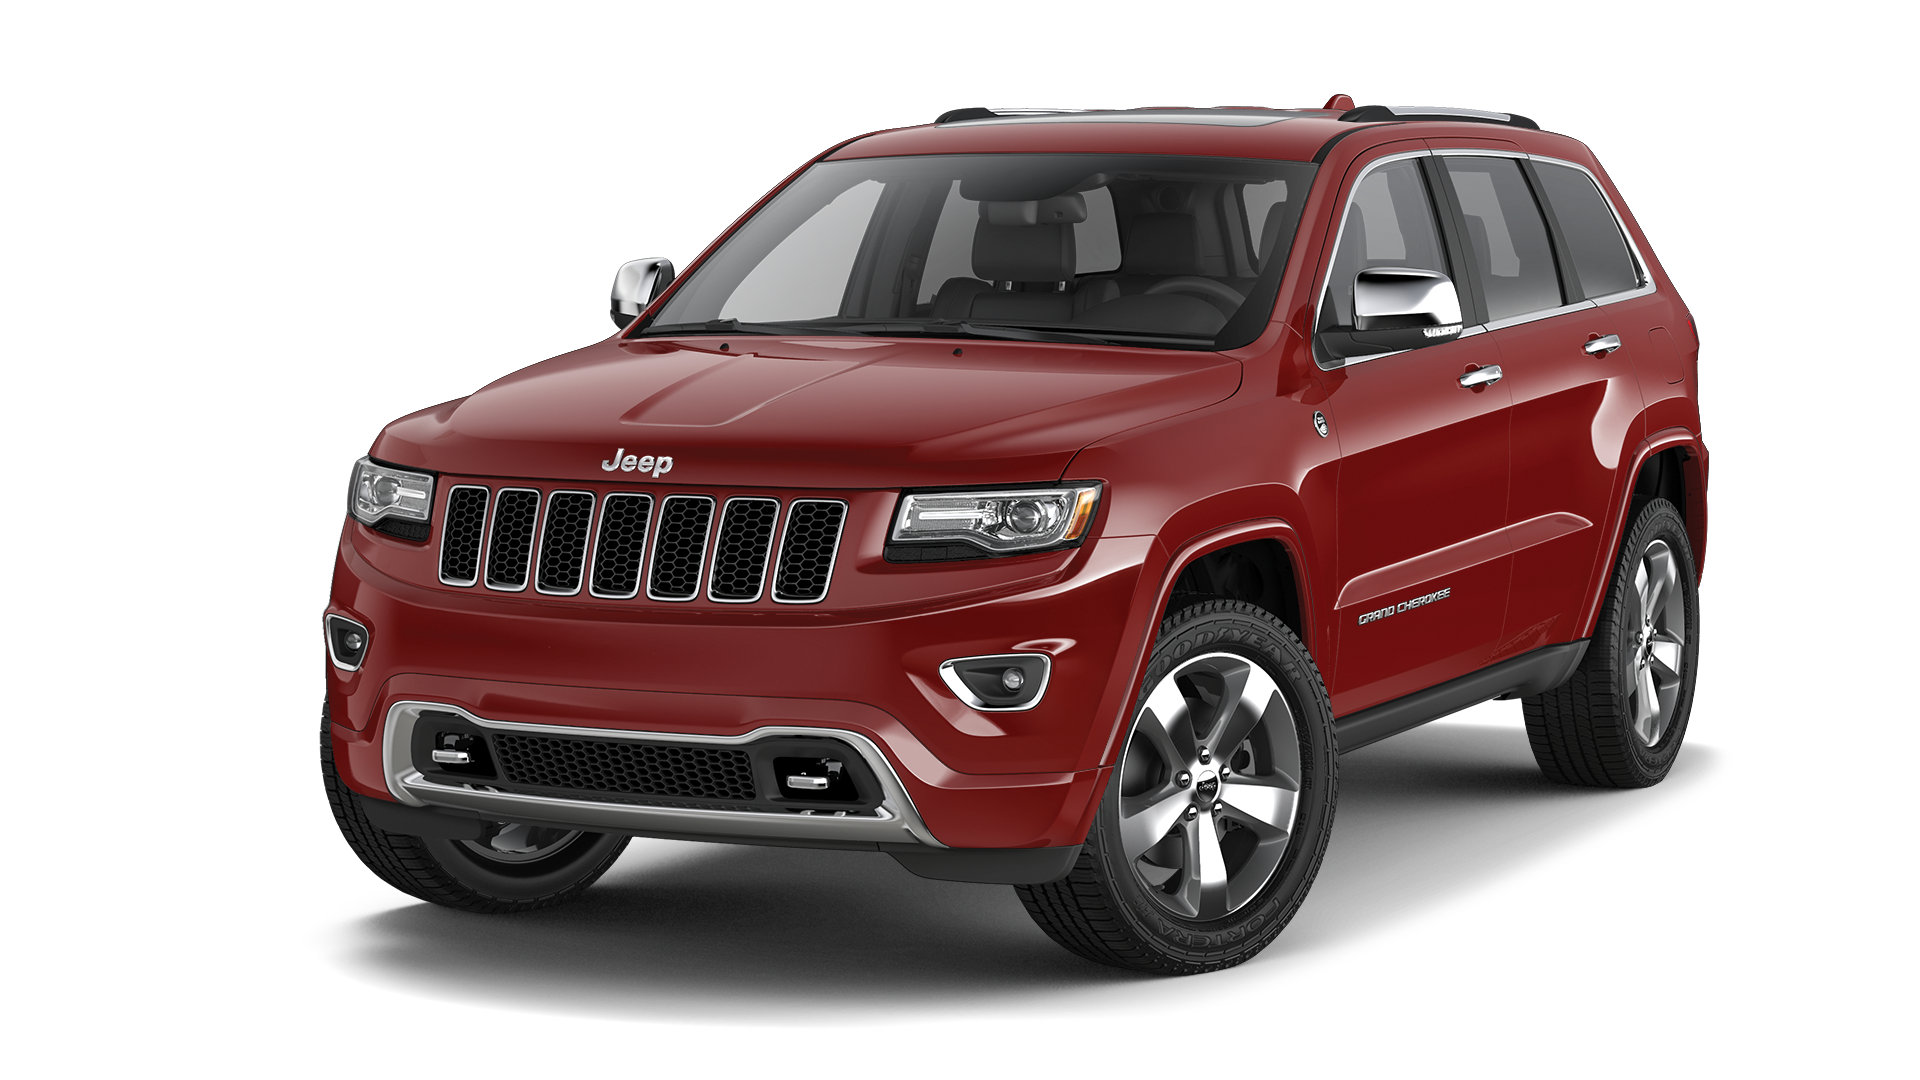 2014 jeep grand cherokee wins midsize suv challenge rothrock blog. Black Bedroom Furniture Sets. Home Design Ideas